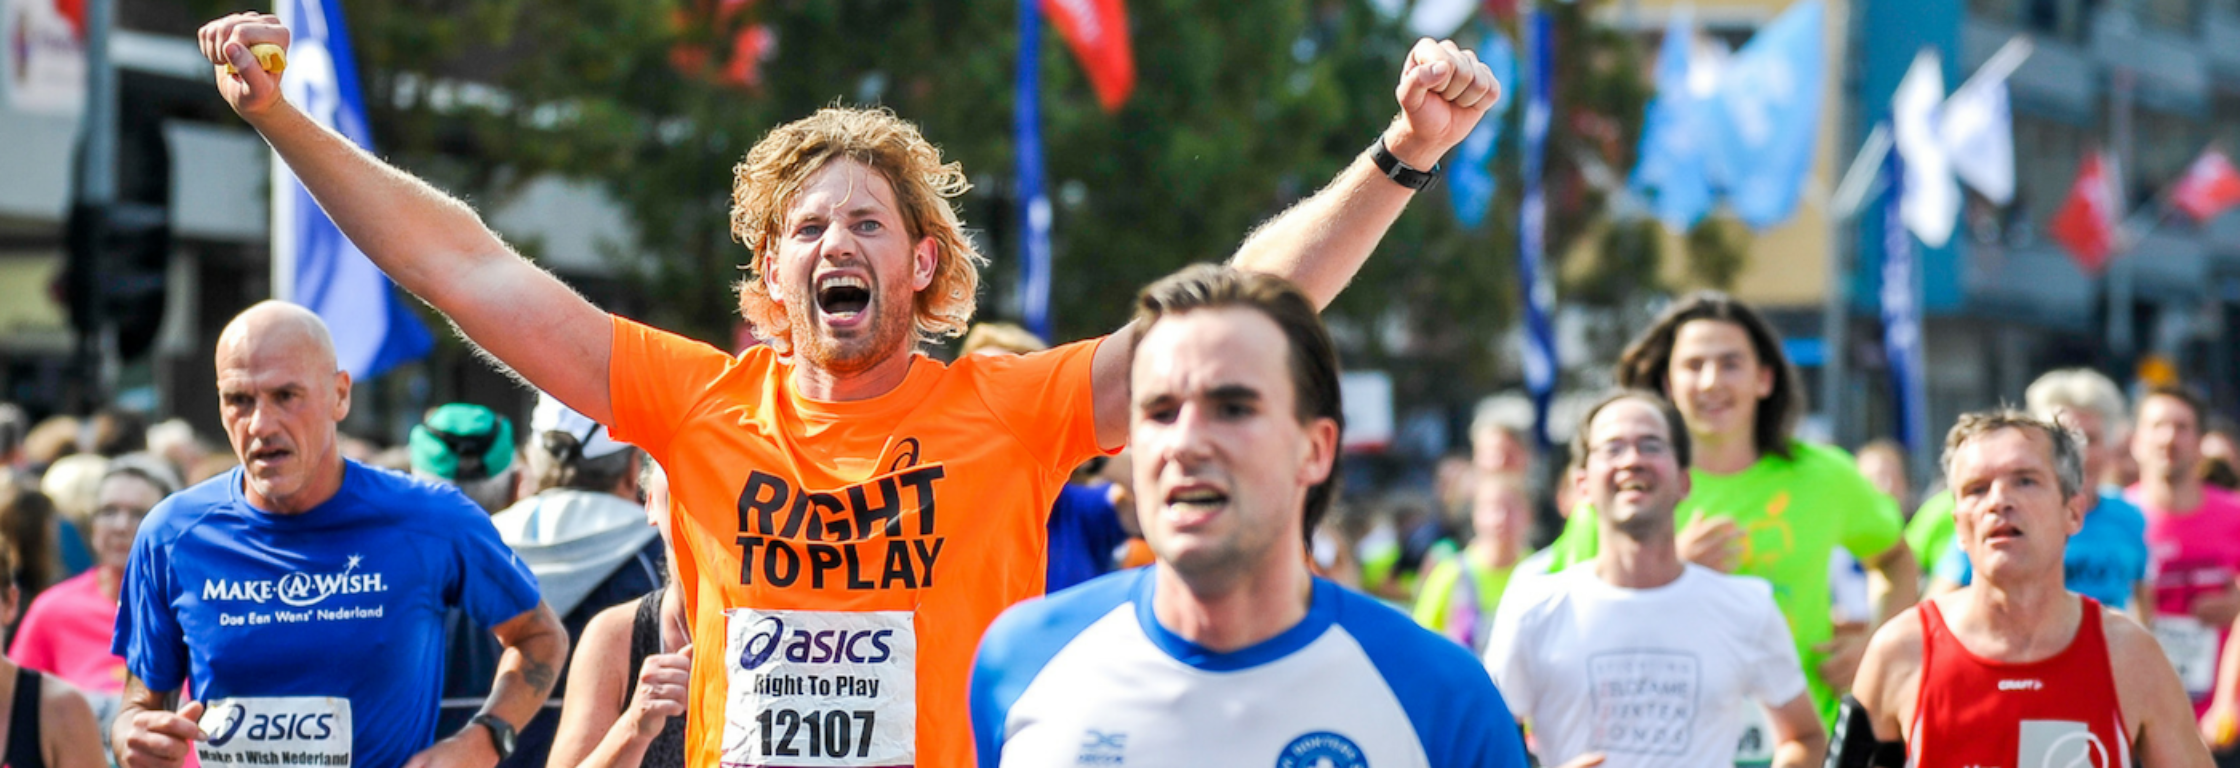 De ultieme Dam tot Damloop ervaring met Right To Play!